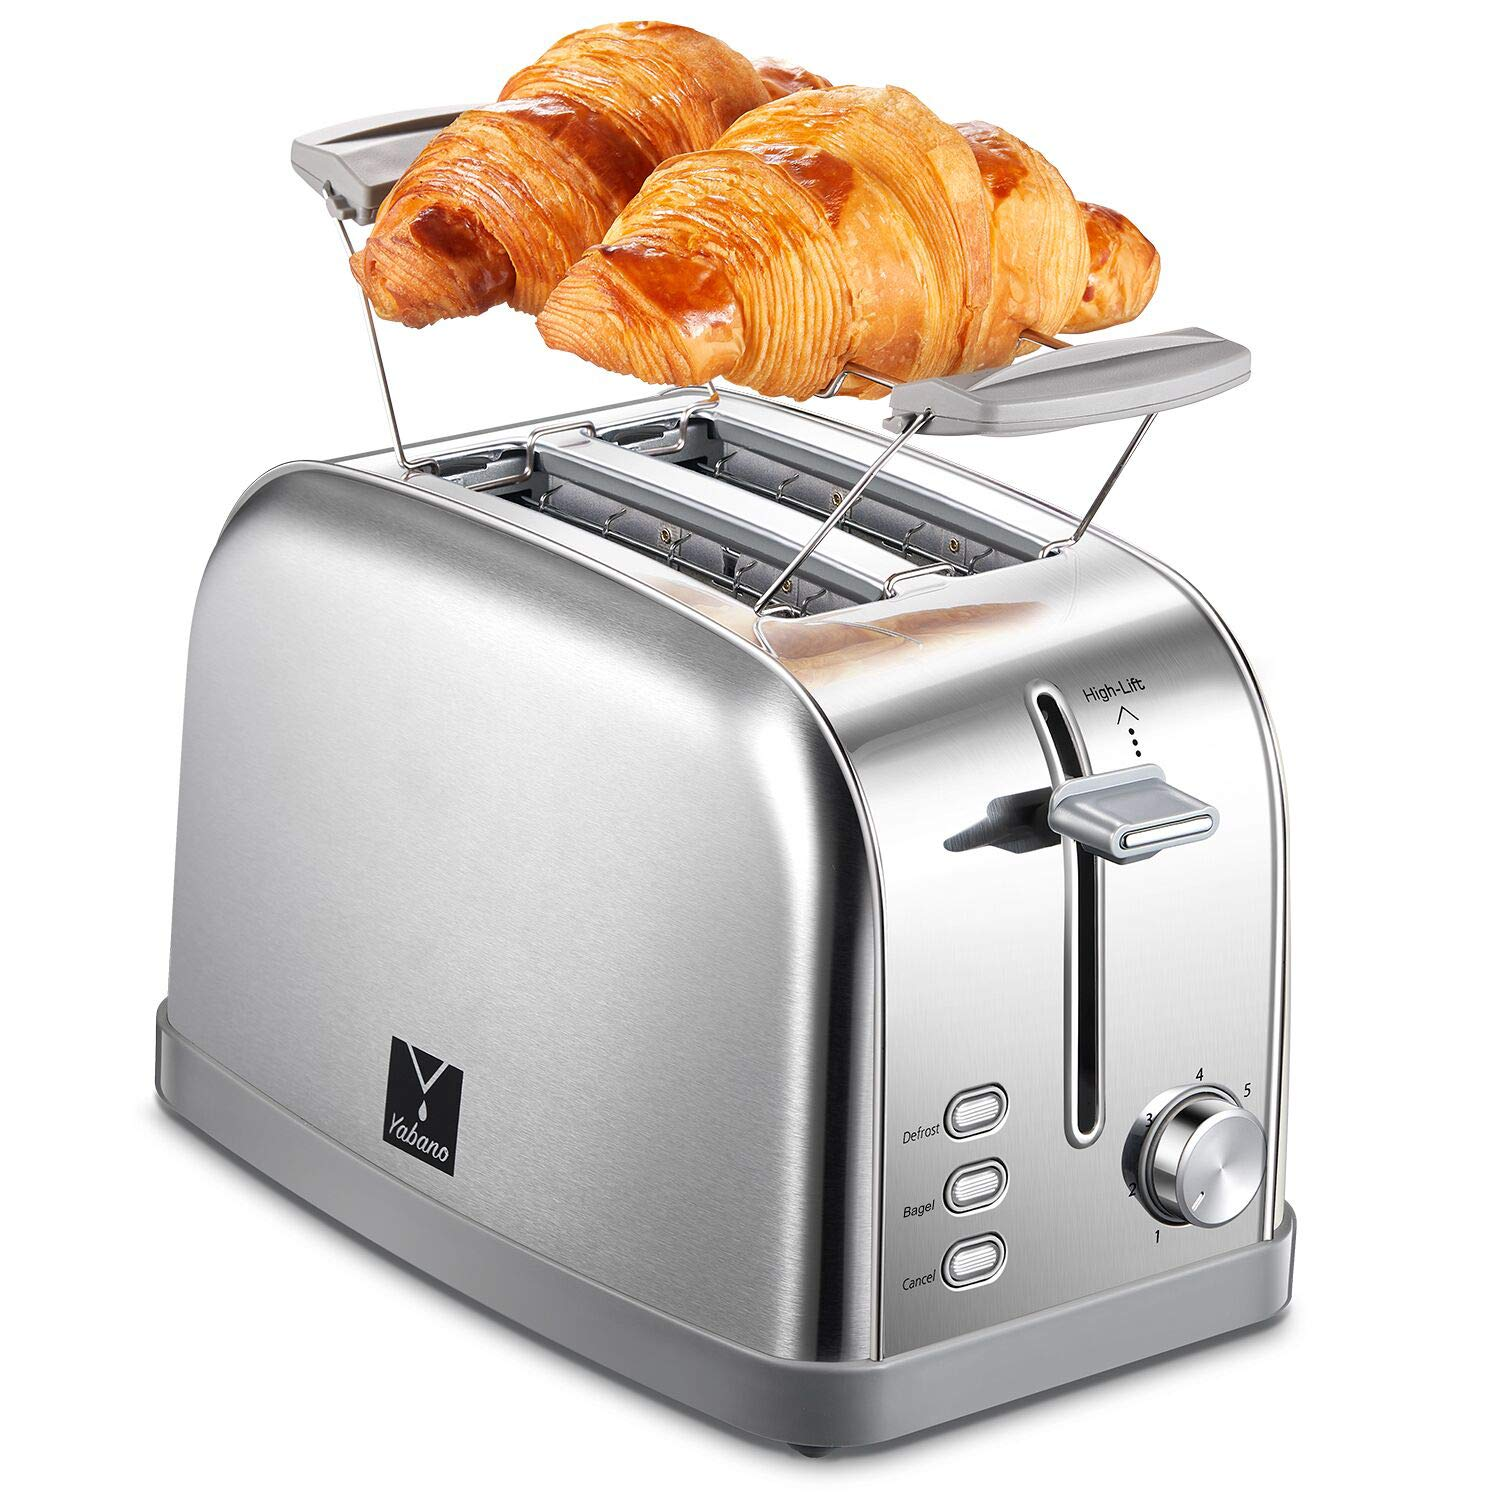 Yabano 2 Slice Toaster, Bagel Toaster Toaster with 7 Bread Shade Settings, Warming Rack, 2 Extra Wide Slots, Defrost Bagel Cancel Function, Removable Crumb Tray, Stainless Steel Toaster – Silver